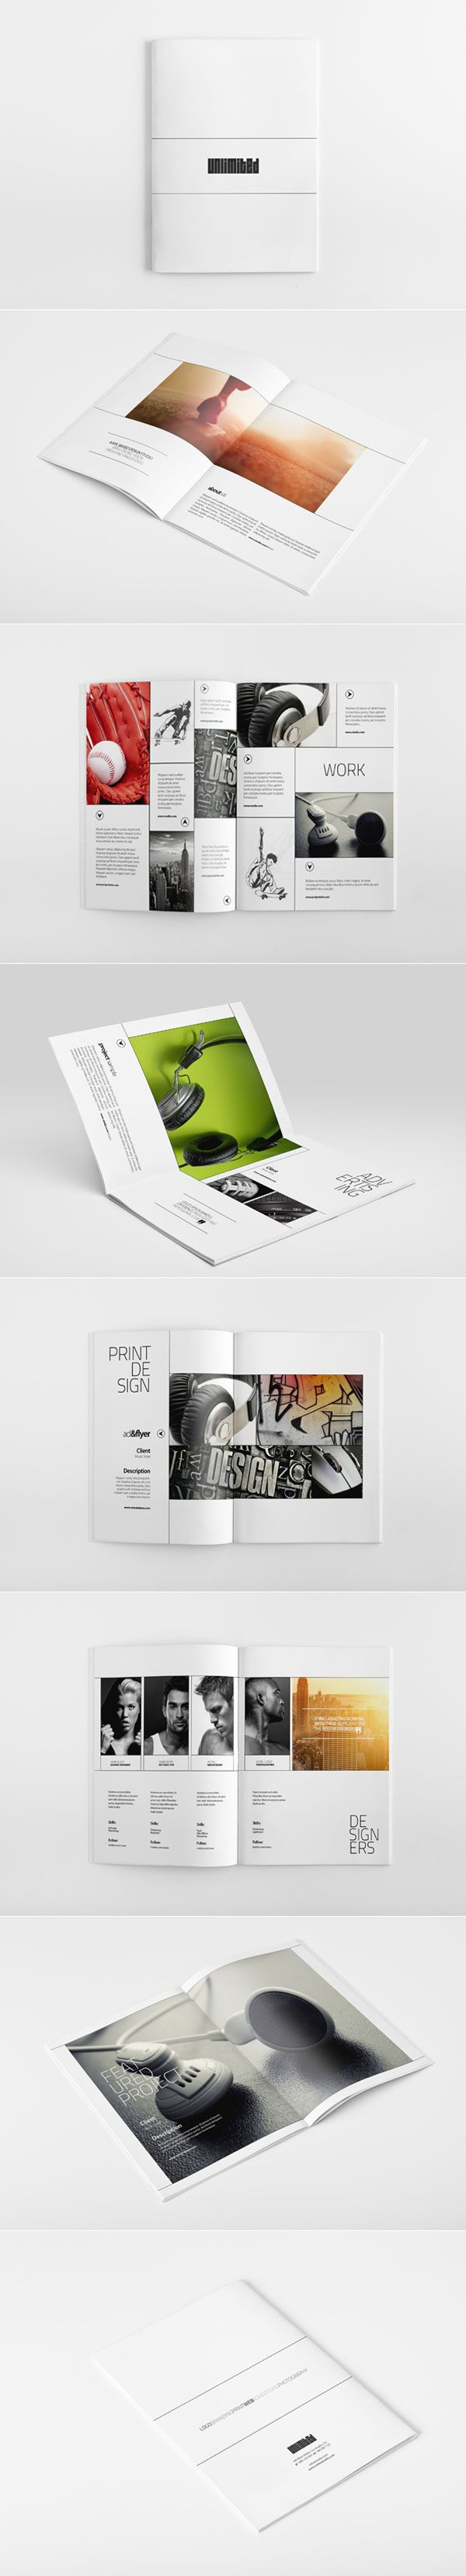 375 best images about portfolio layout on pinterest brochure layout behance and brochure examples. Black Bedroom Furniture Sets. Home Design Ideas